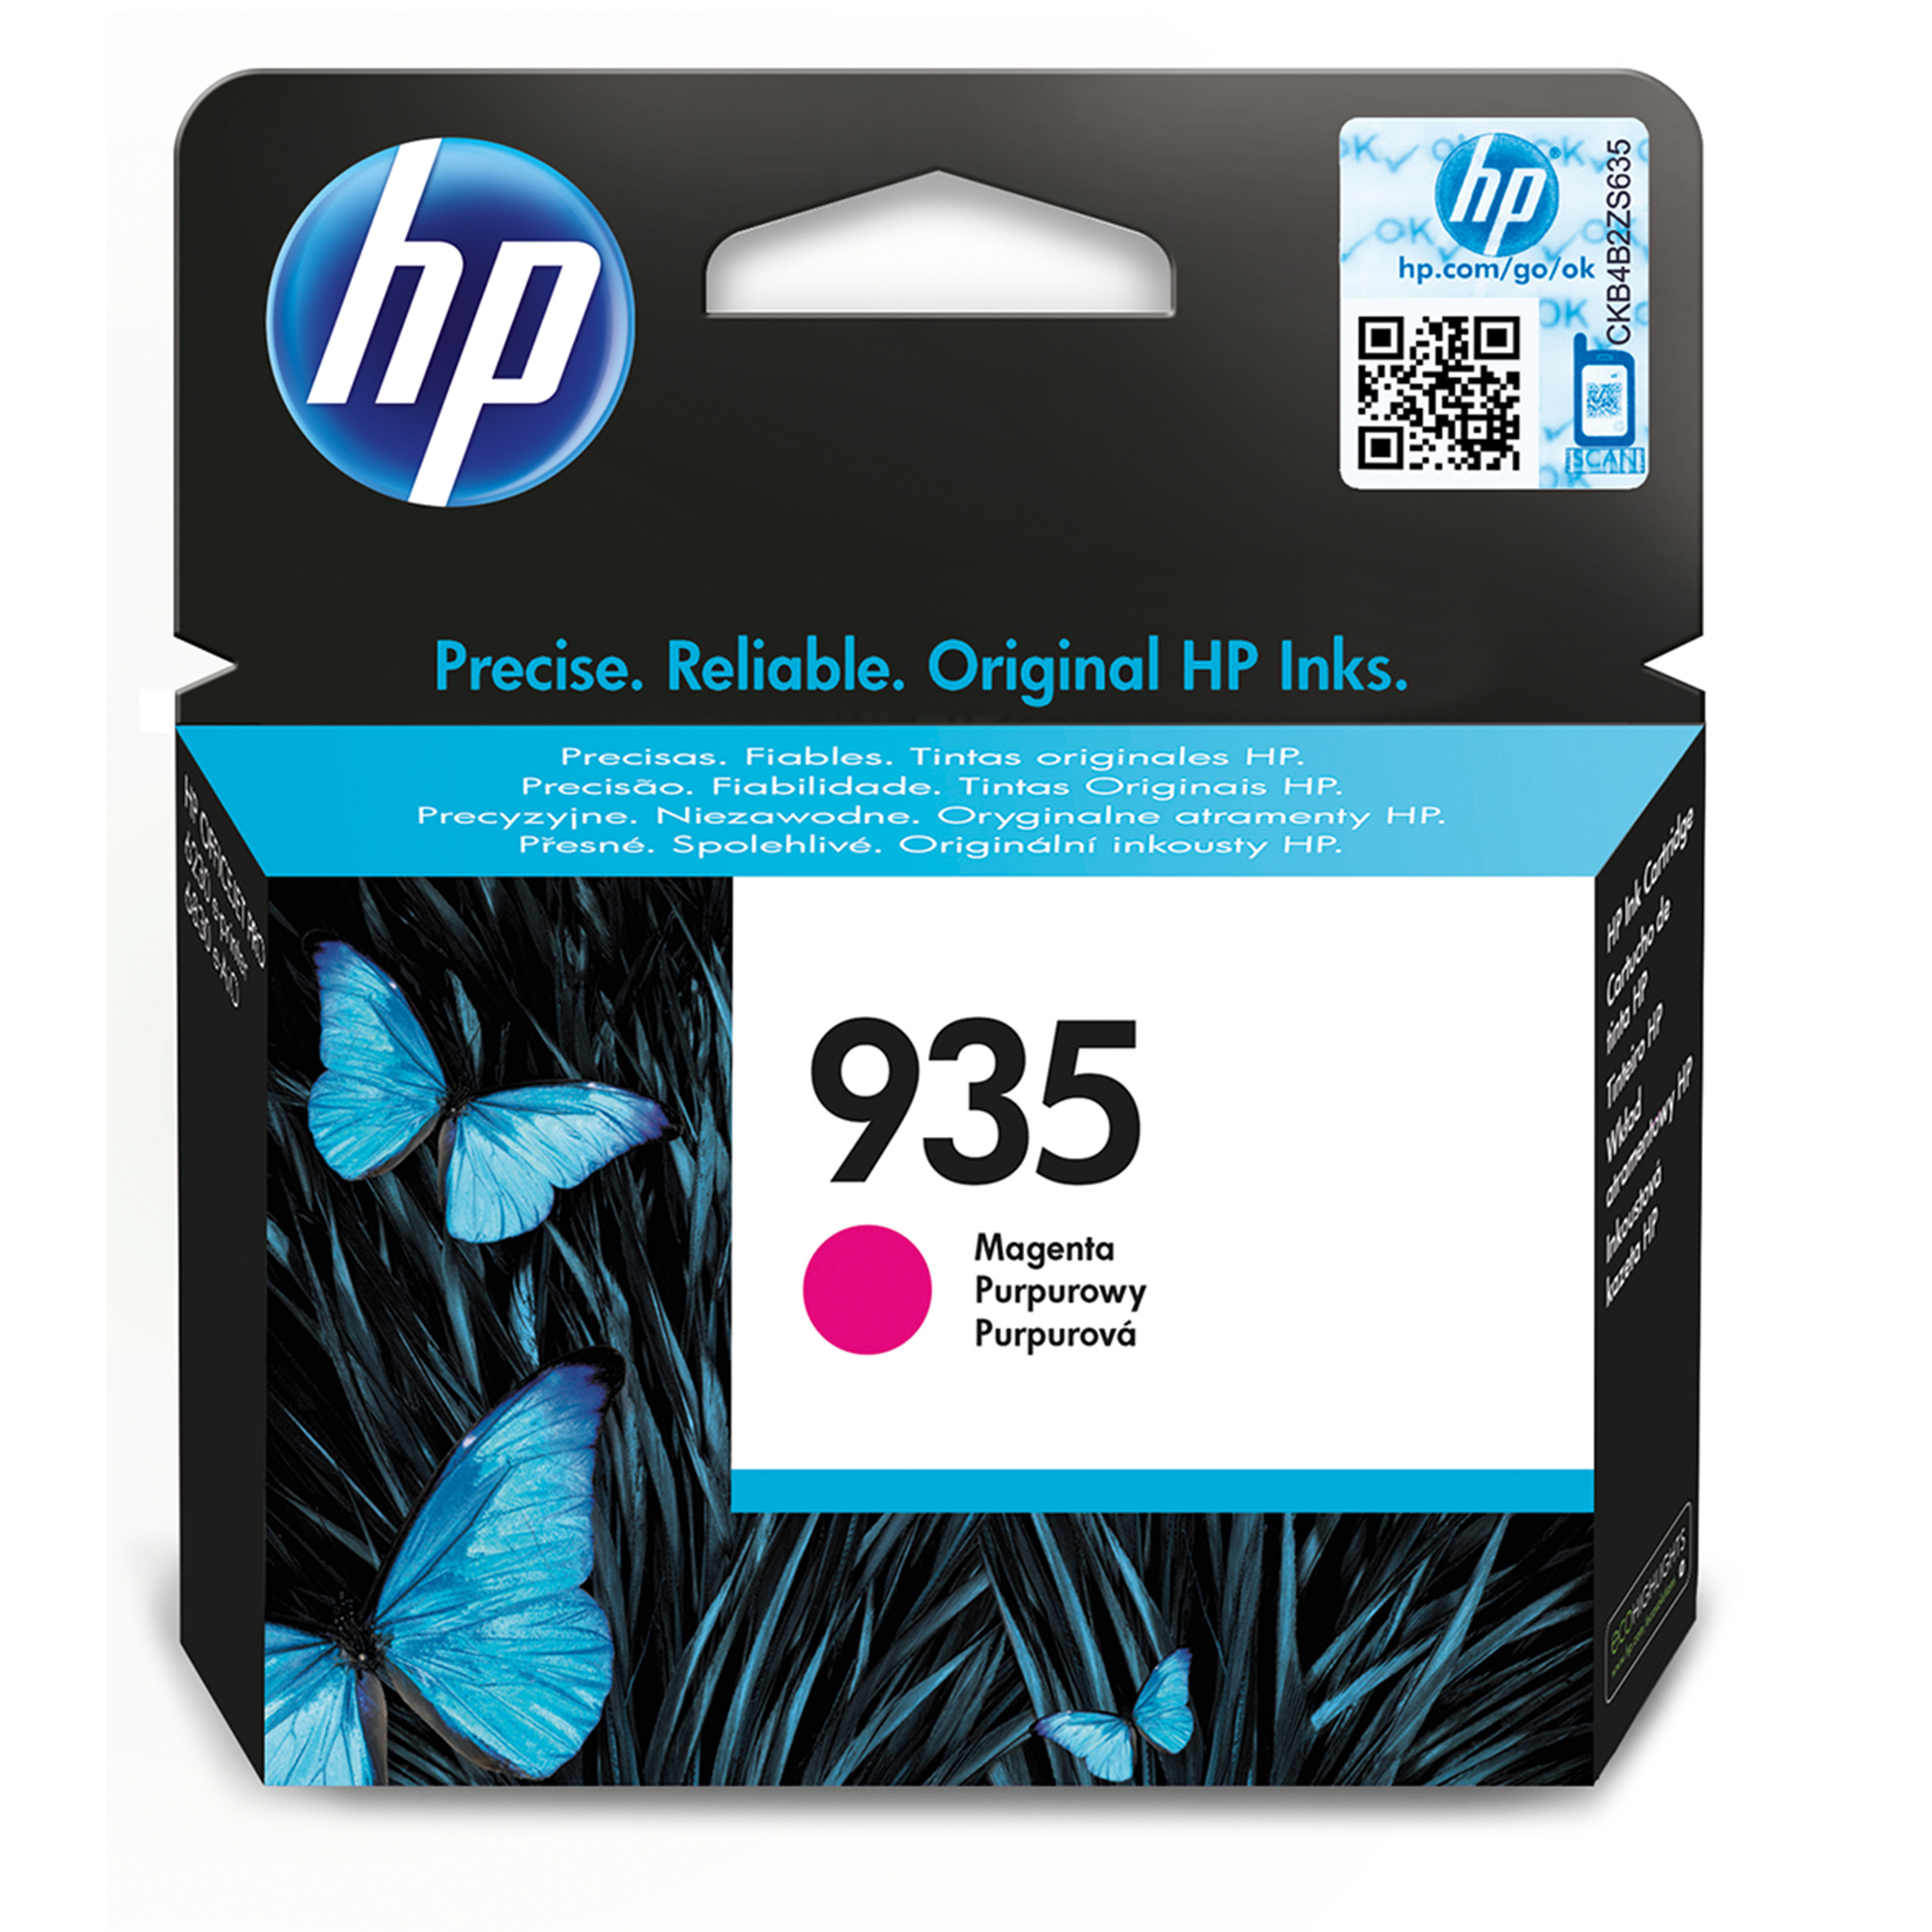 HP Hp 935 Magenta Ink Cartridge C2p21ae - AD01